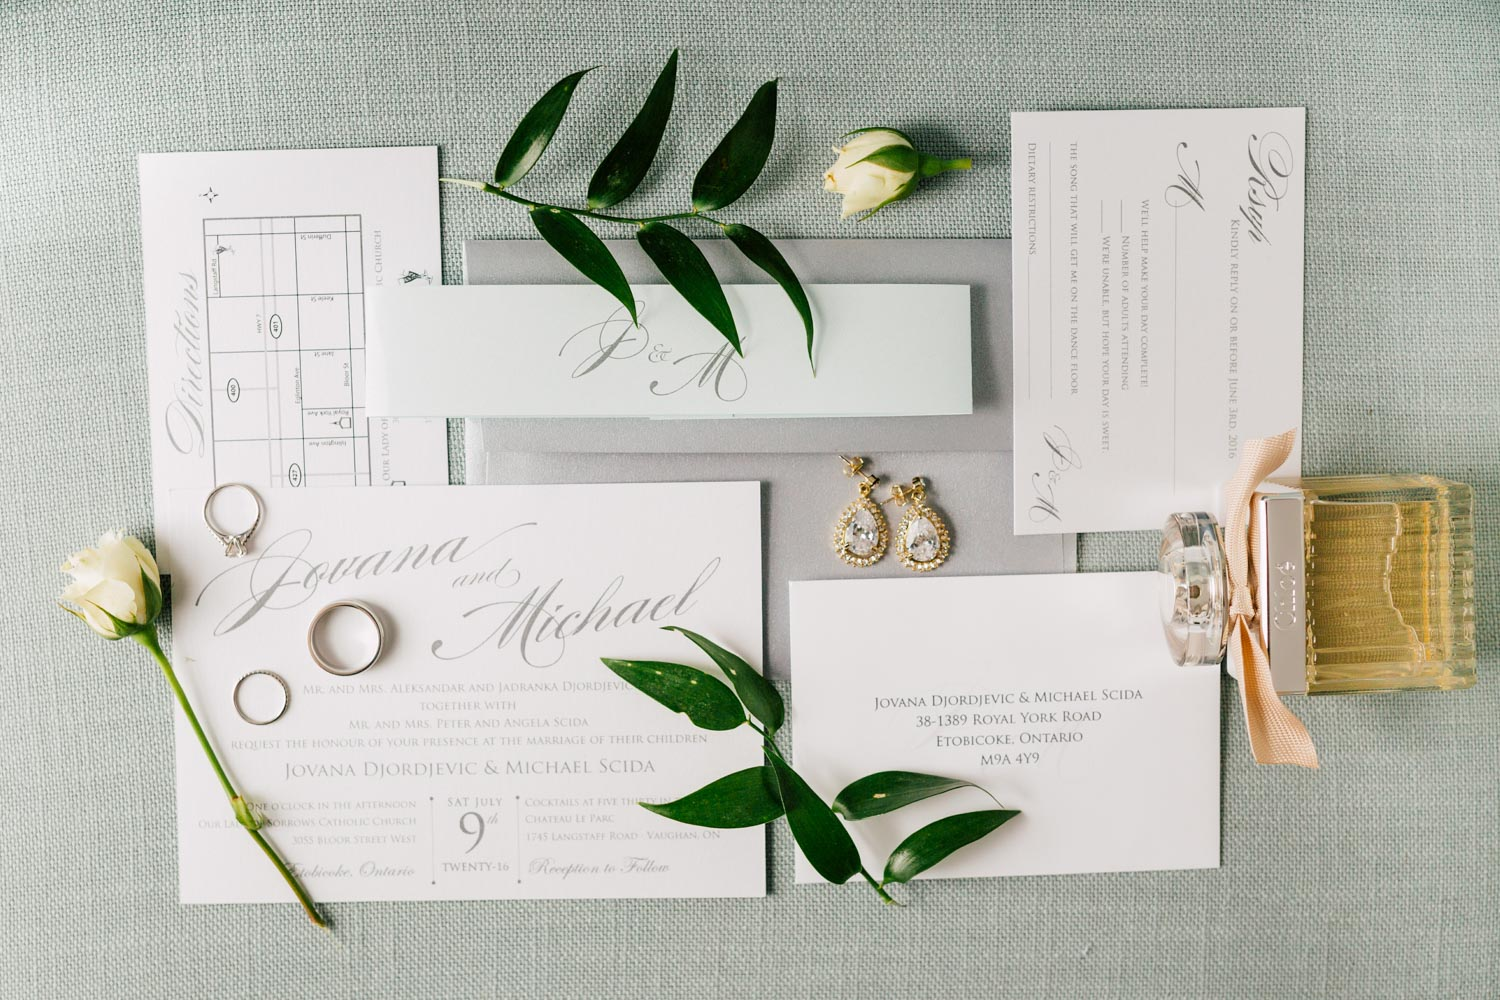 wedding stationary and details